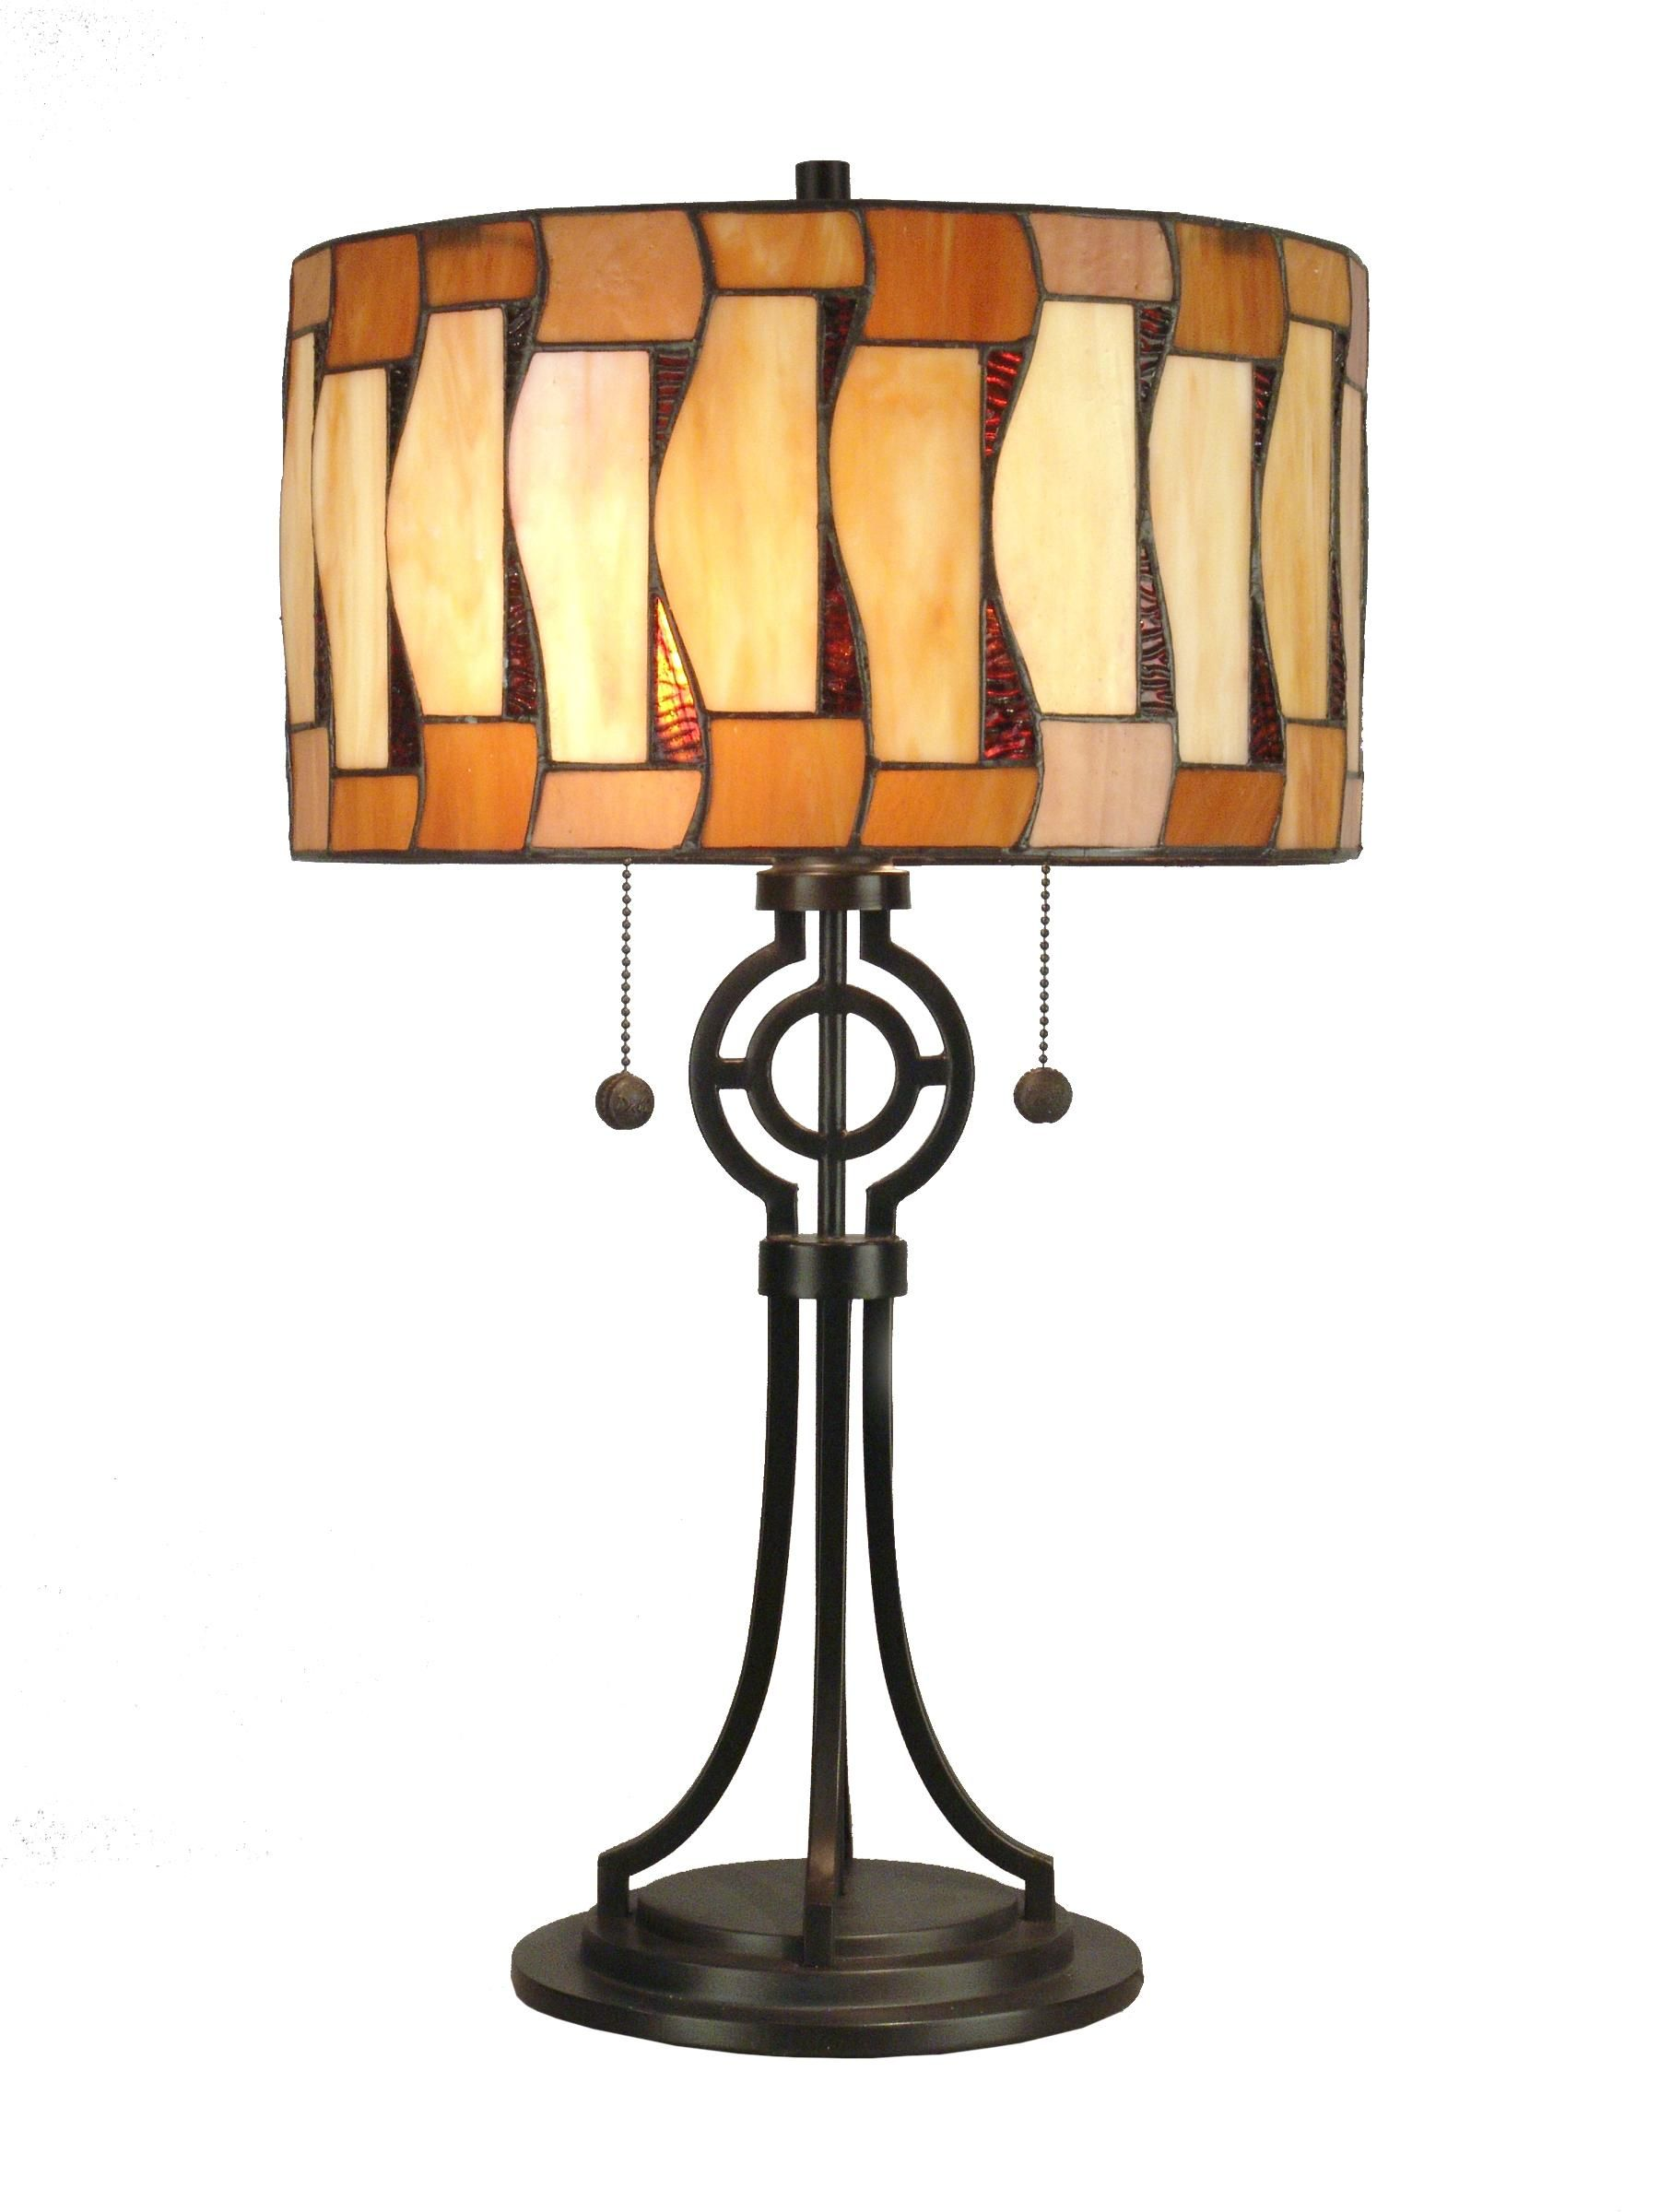 Tiffany lamp Art glass table lamp, Stained glass lamps